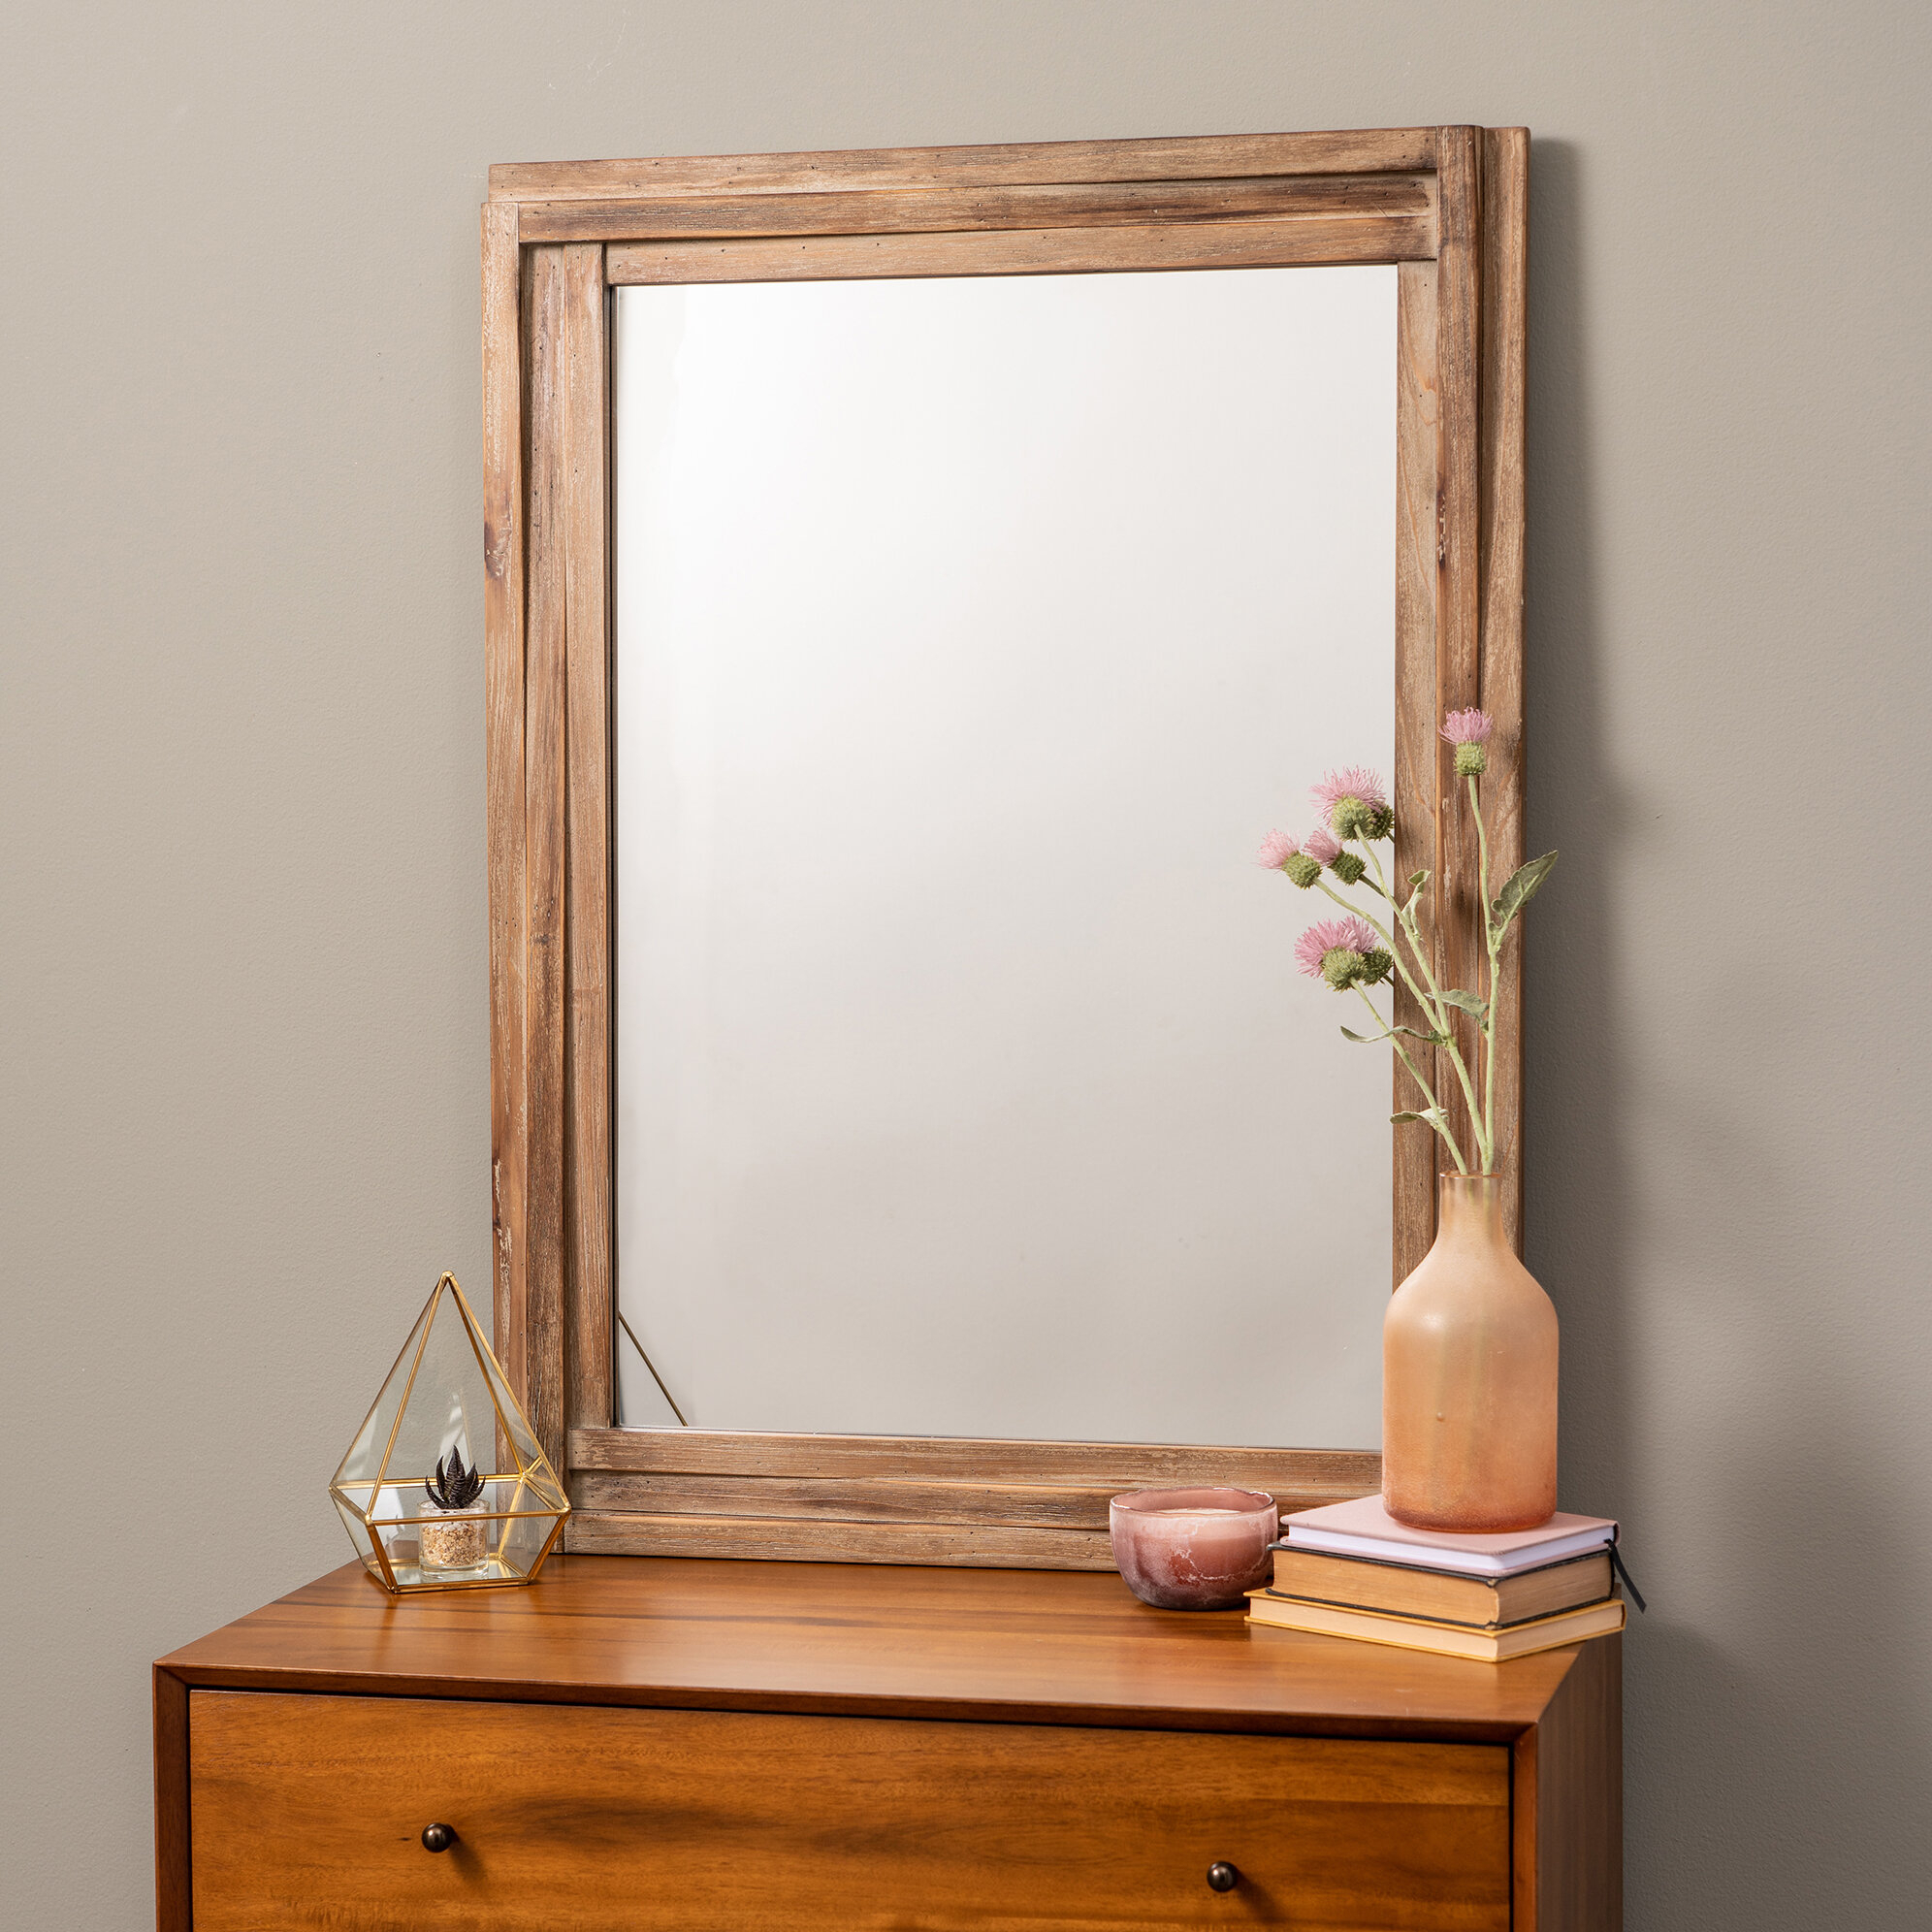 Farmhouse & Rustic Loon Peak Wall & Accent Mirrors | Birch Lane In Lajoie Rustic Accent Mirrors (View 13 of 20)